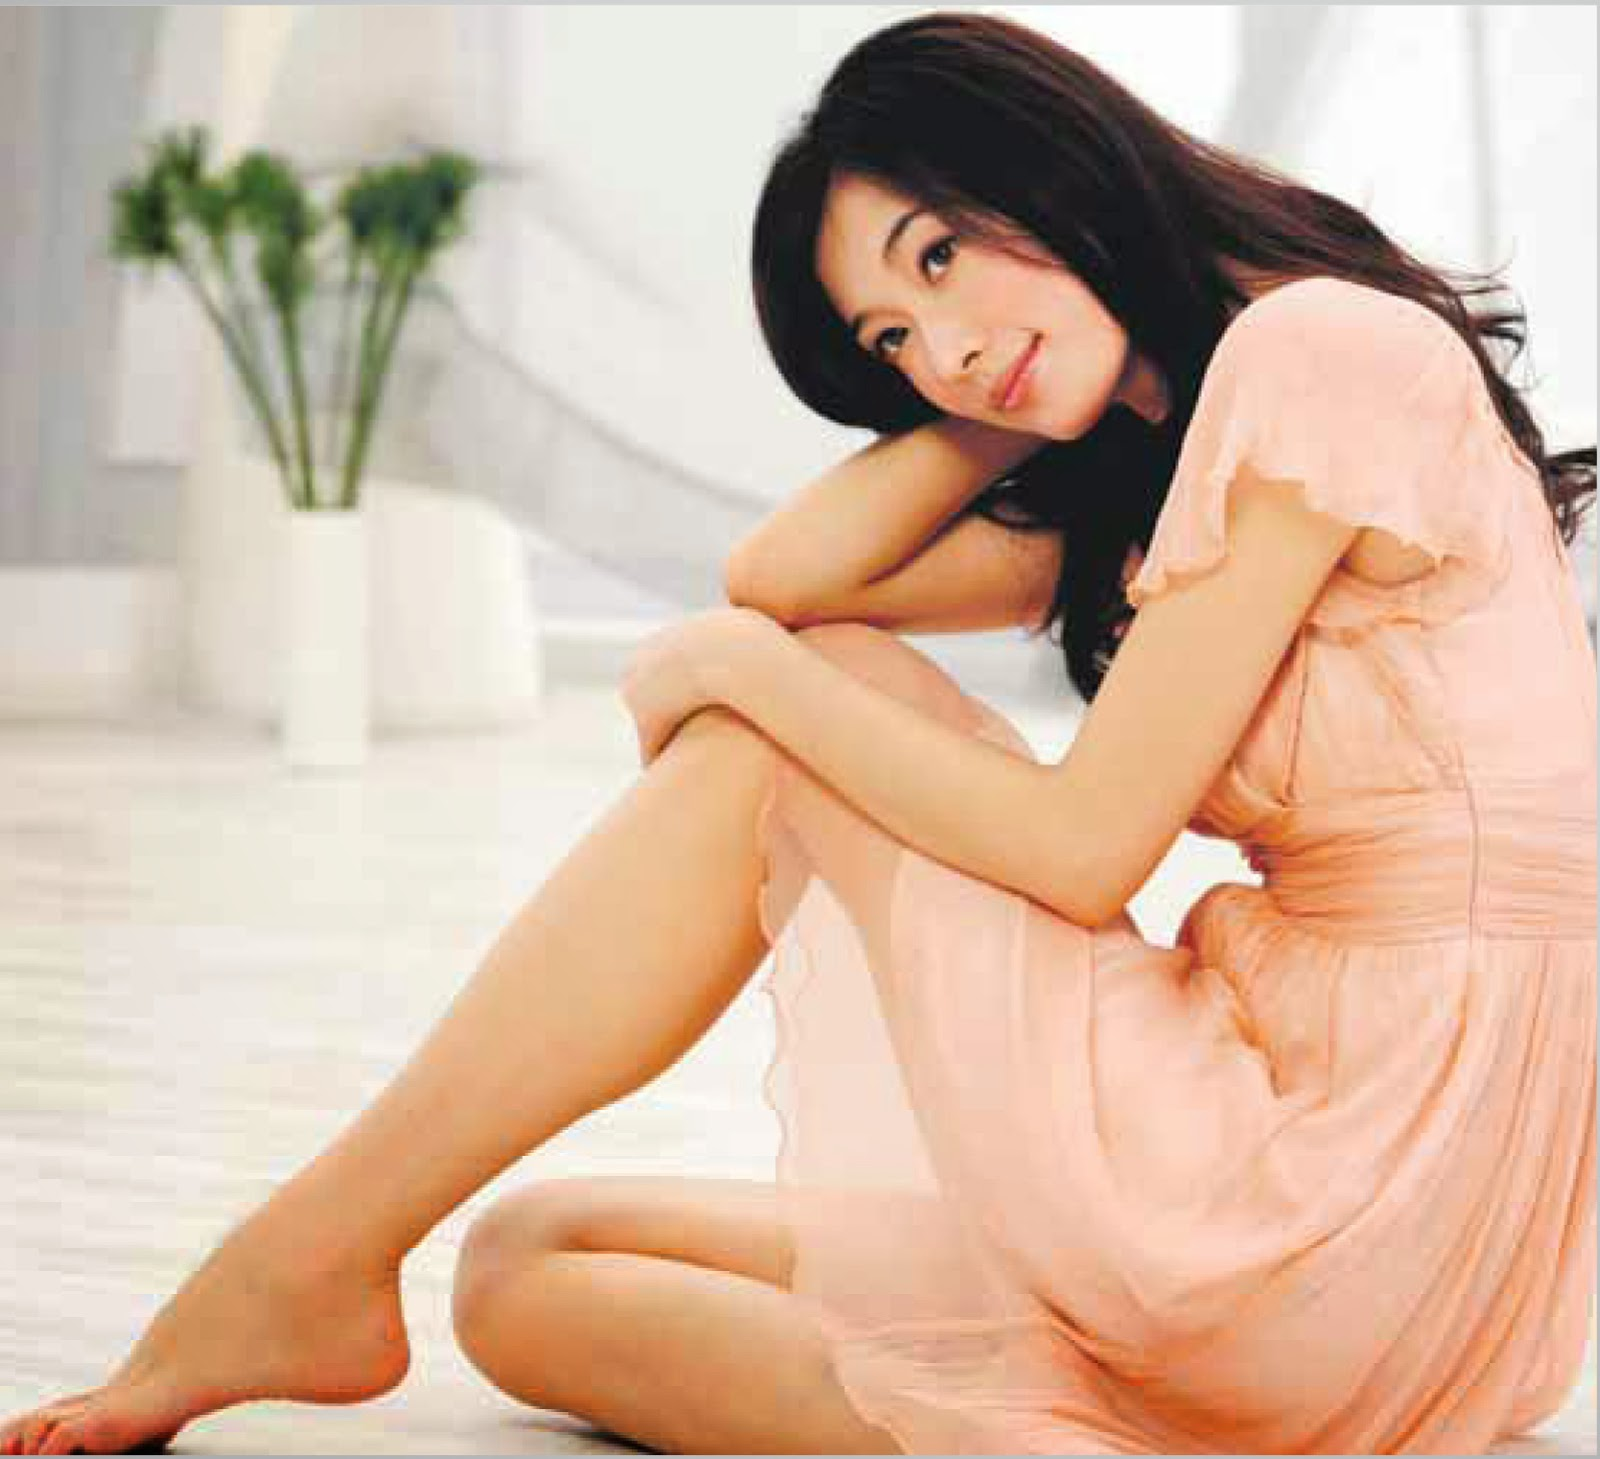 Top Chinese Model girls